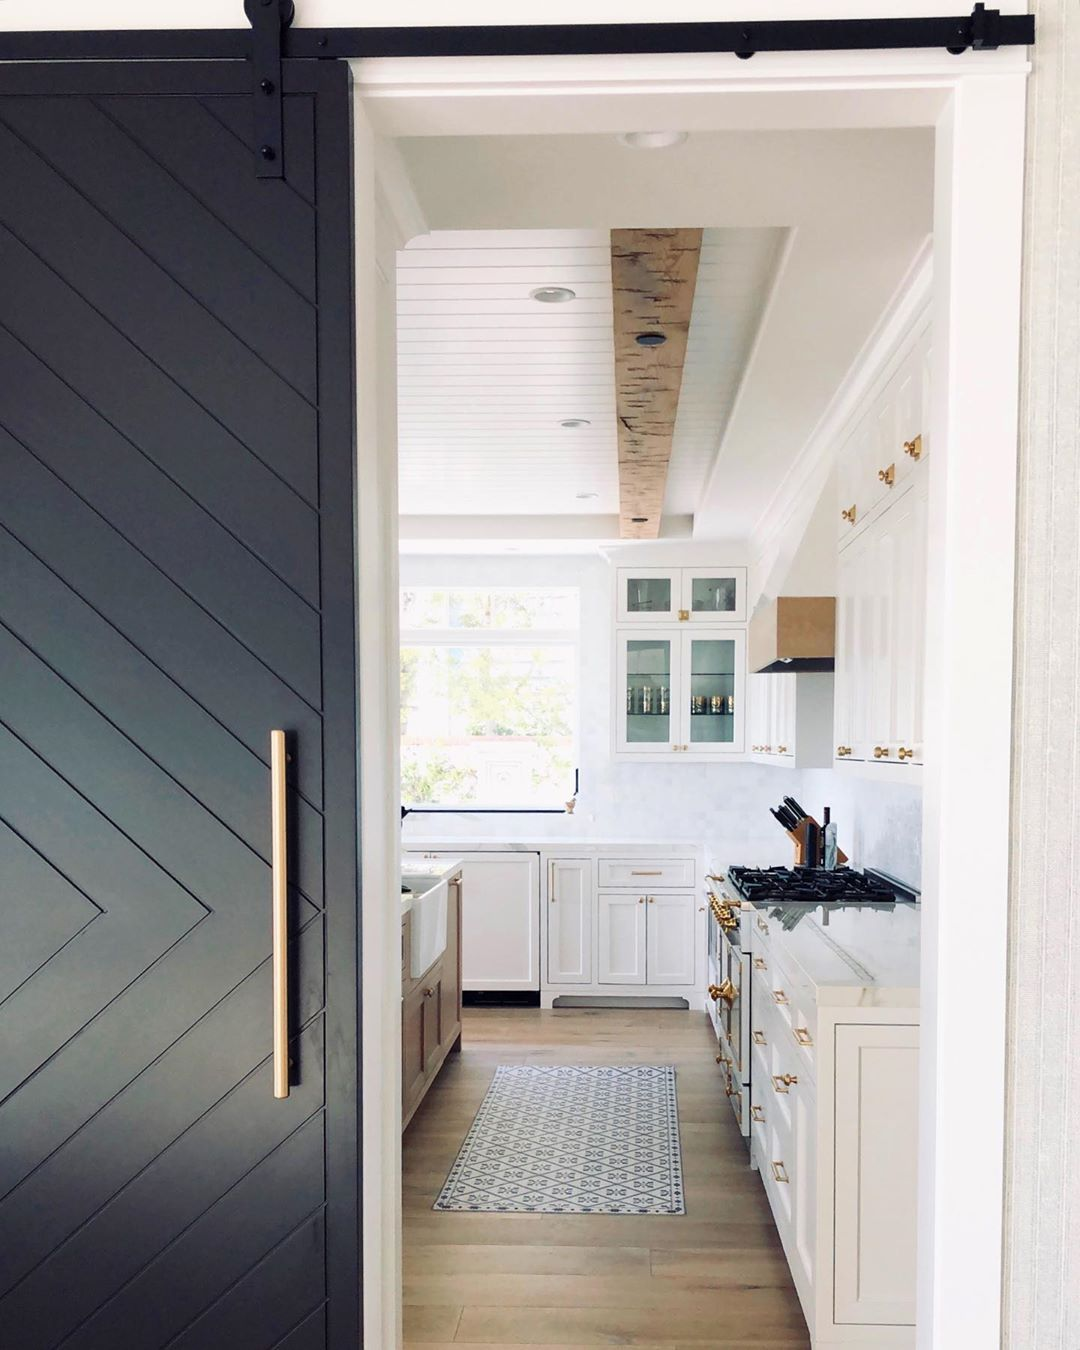 "Jill Johnson on Instagram: ""We love this barn door that separates the dining room from the kitchen in our #newportproject  #coastalchic @coastalliving #newporthome…"""